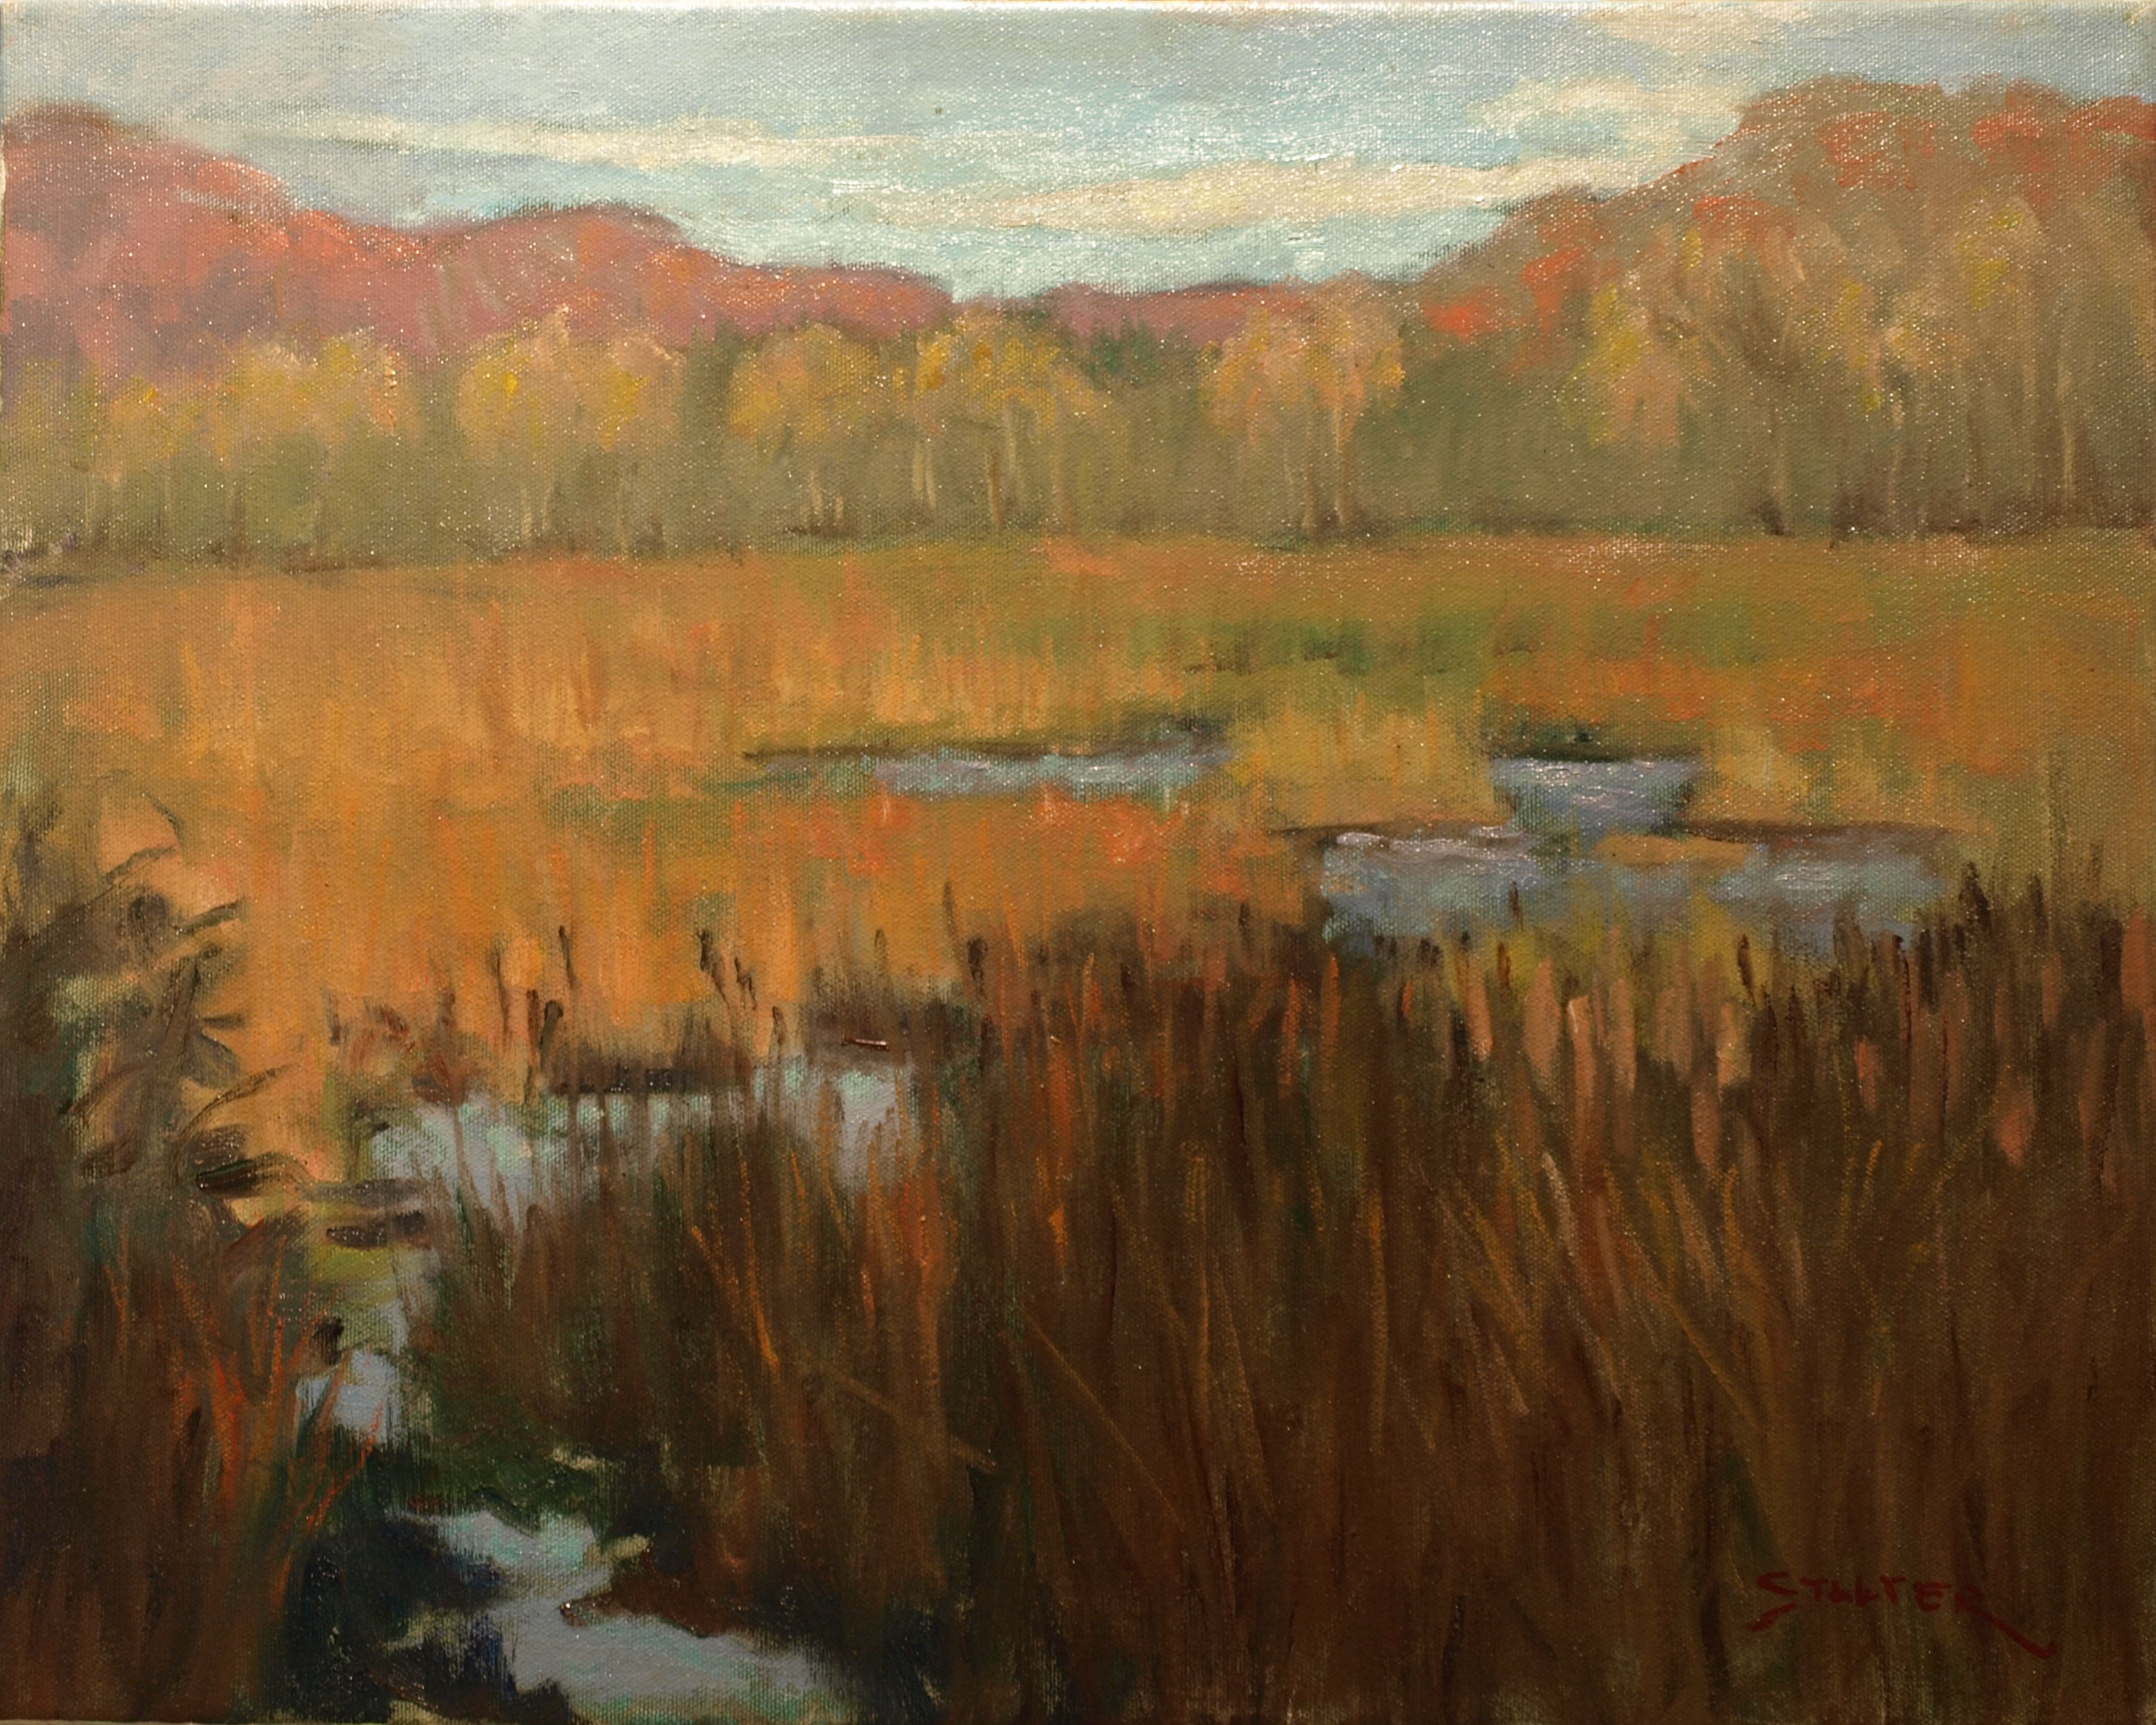 Marsh in Full Autumn, Oil on Canvas, 16 x 20 Inches, by Richard Stalter, $450